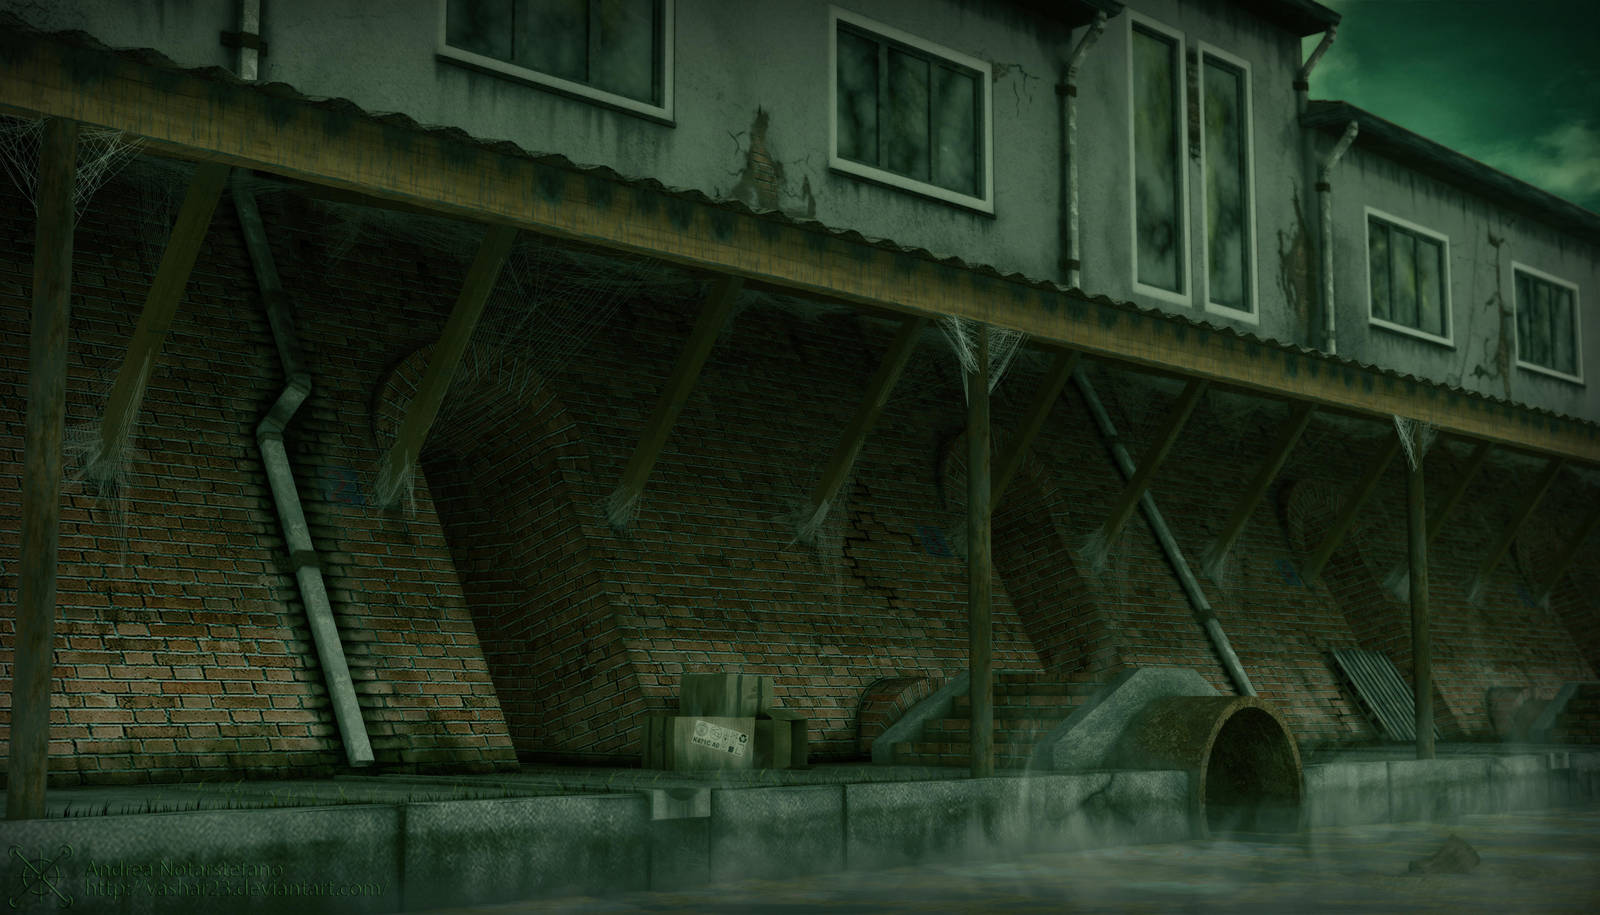 Sewer canal by Vashar23